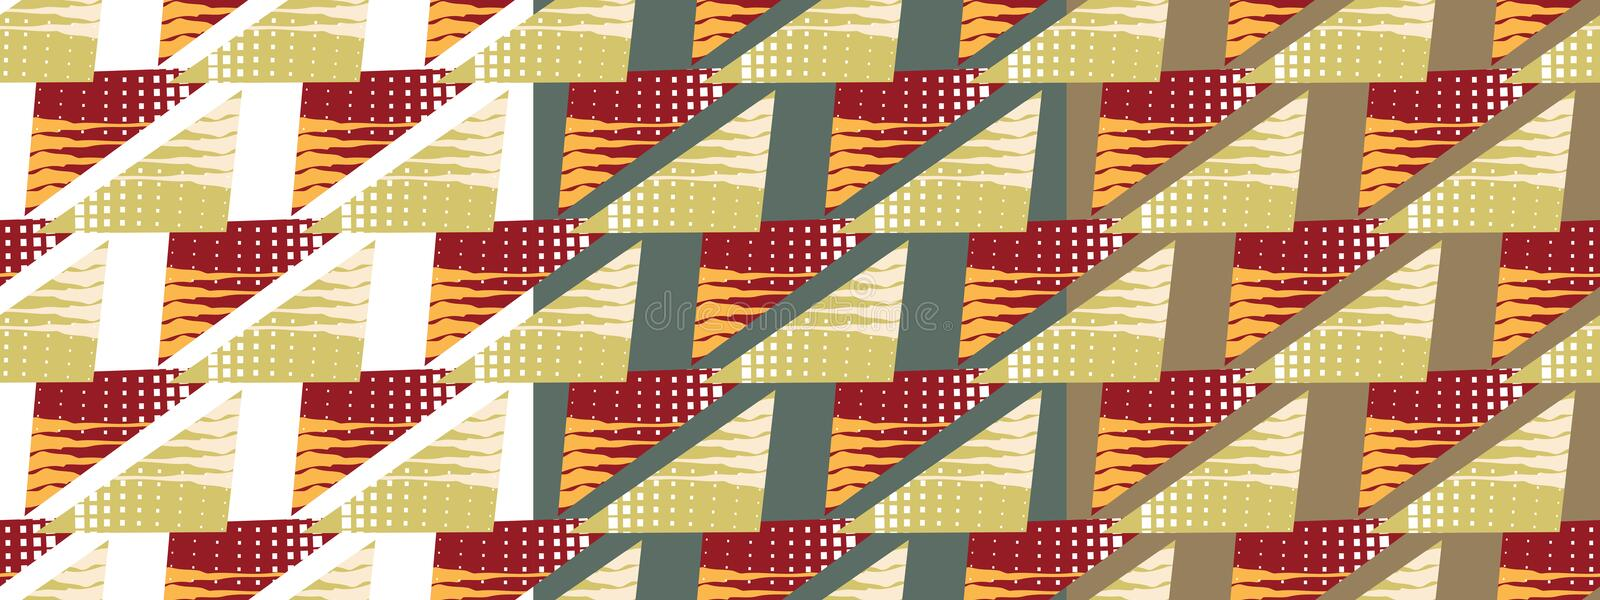 Bright pattern made of triangles. royalty free illustration